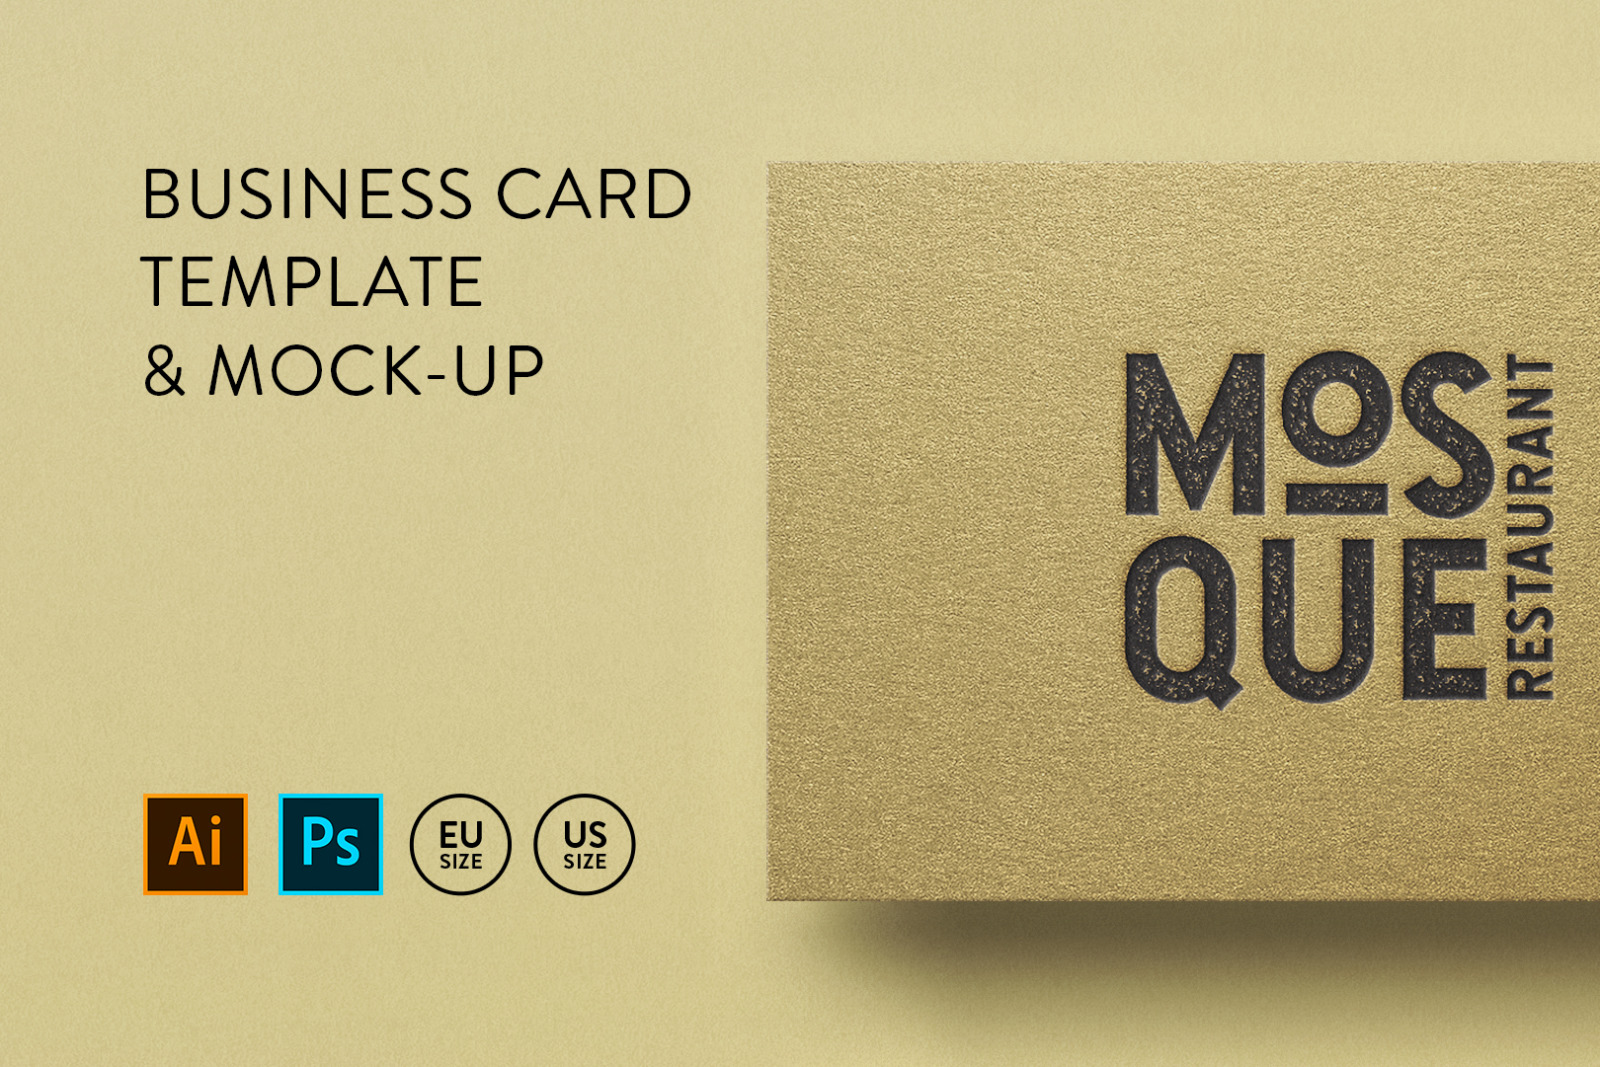 Business card Template & Mock-up #41